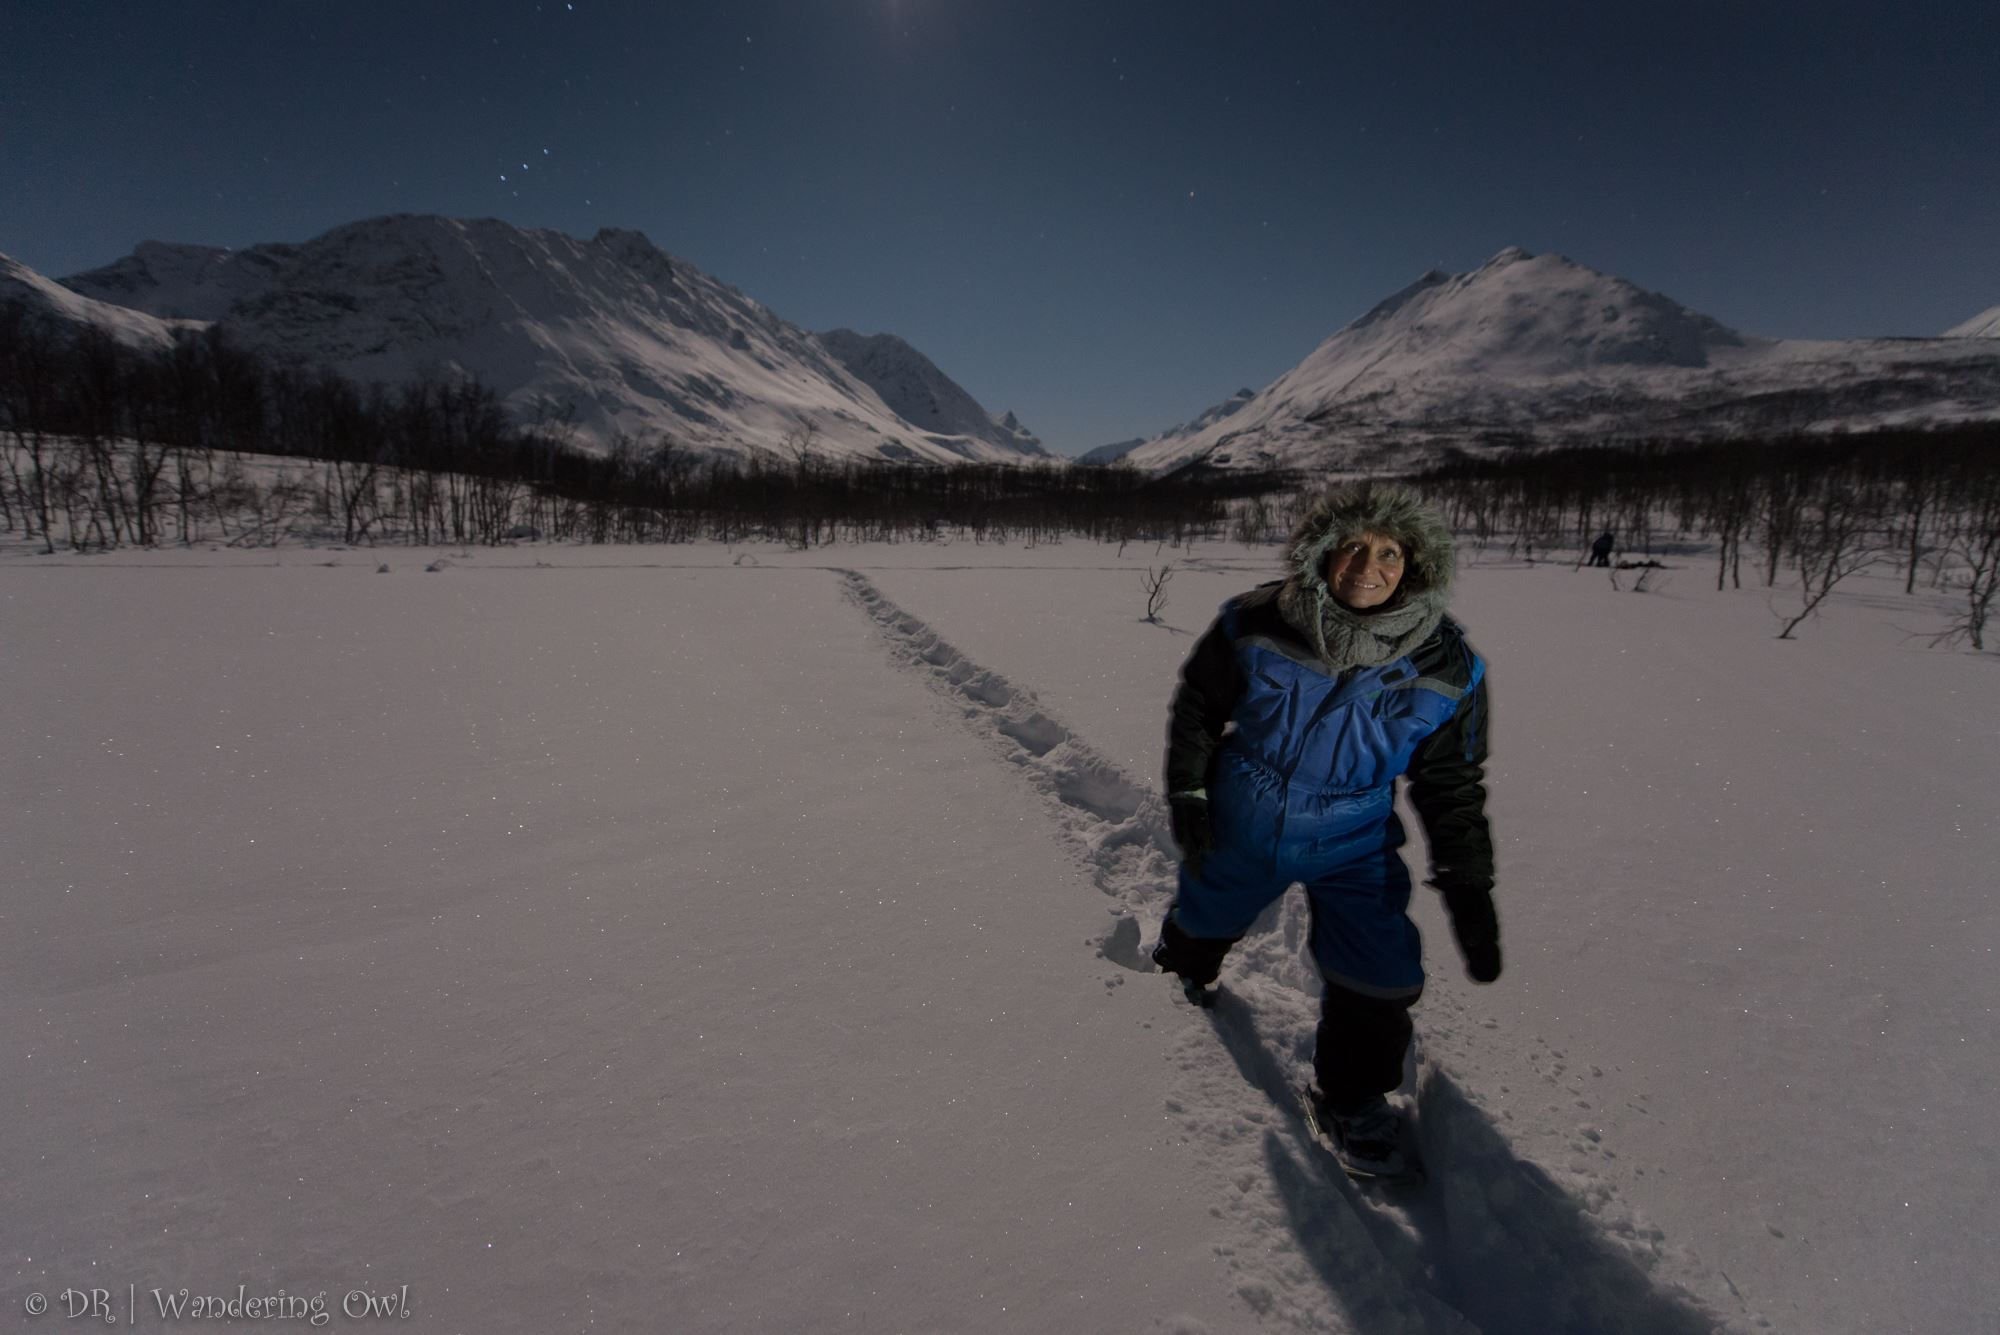 Star Walk – a night snowshoeing tour – Wandering Owl